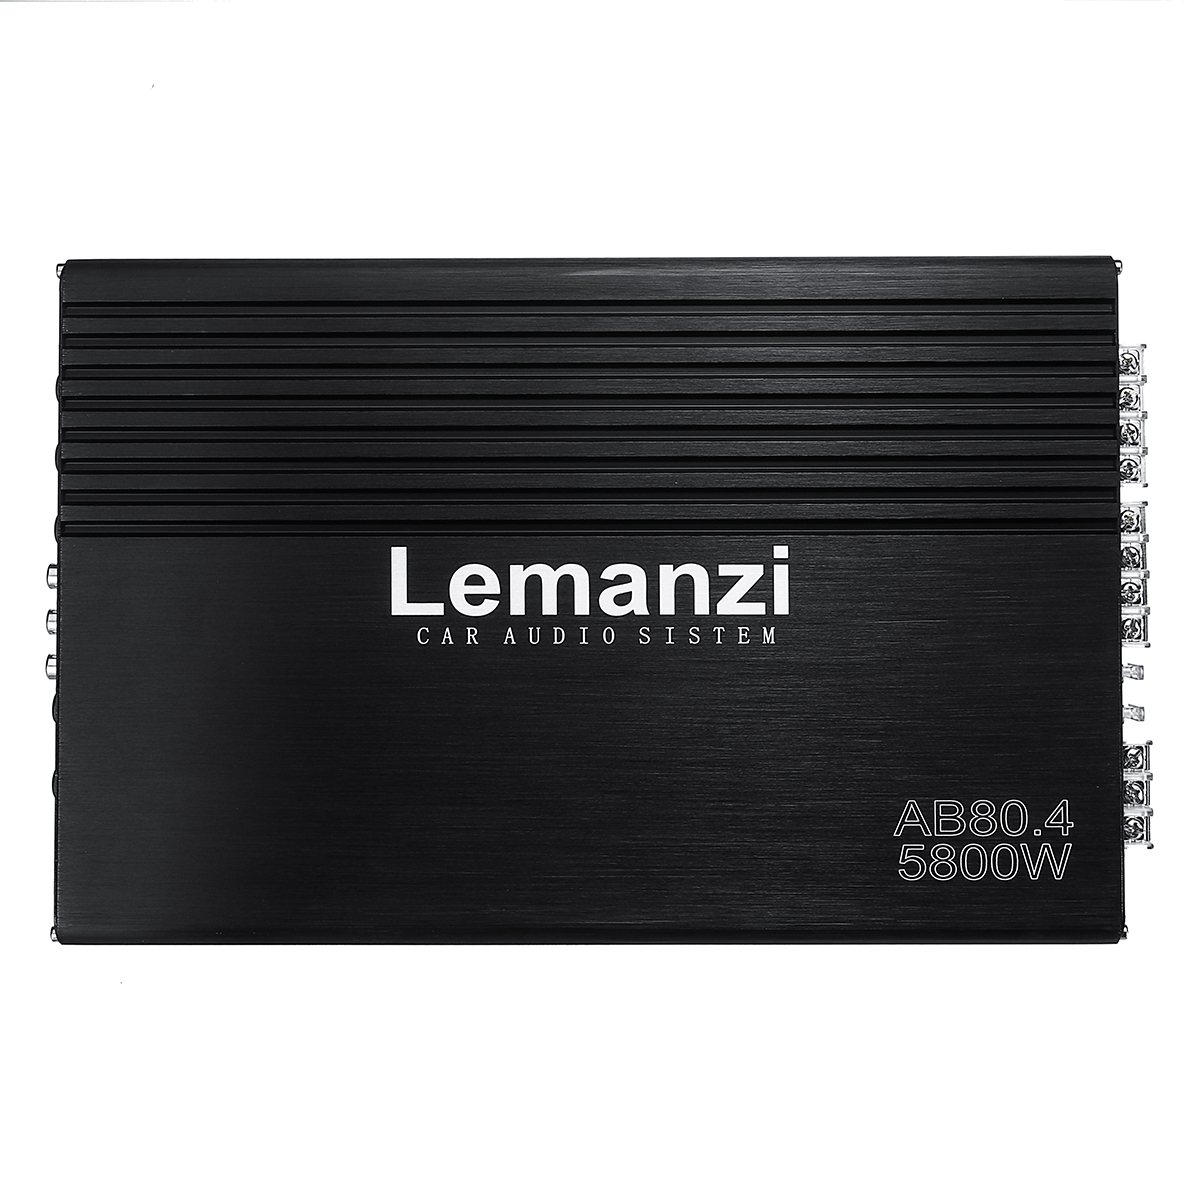 5800W 12V High Power Four-way Amplifier Car Amplifier HiFi Audio